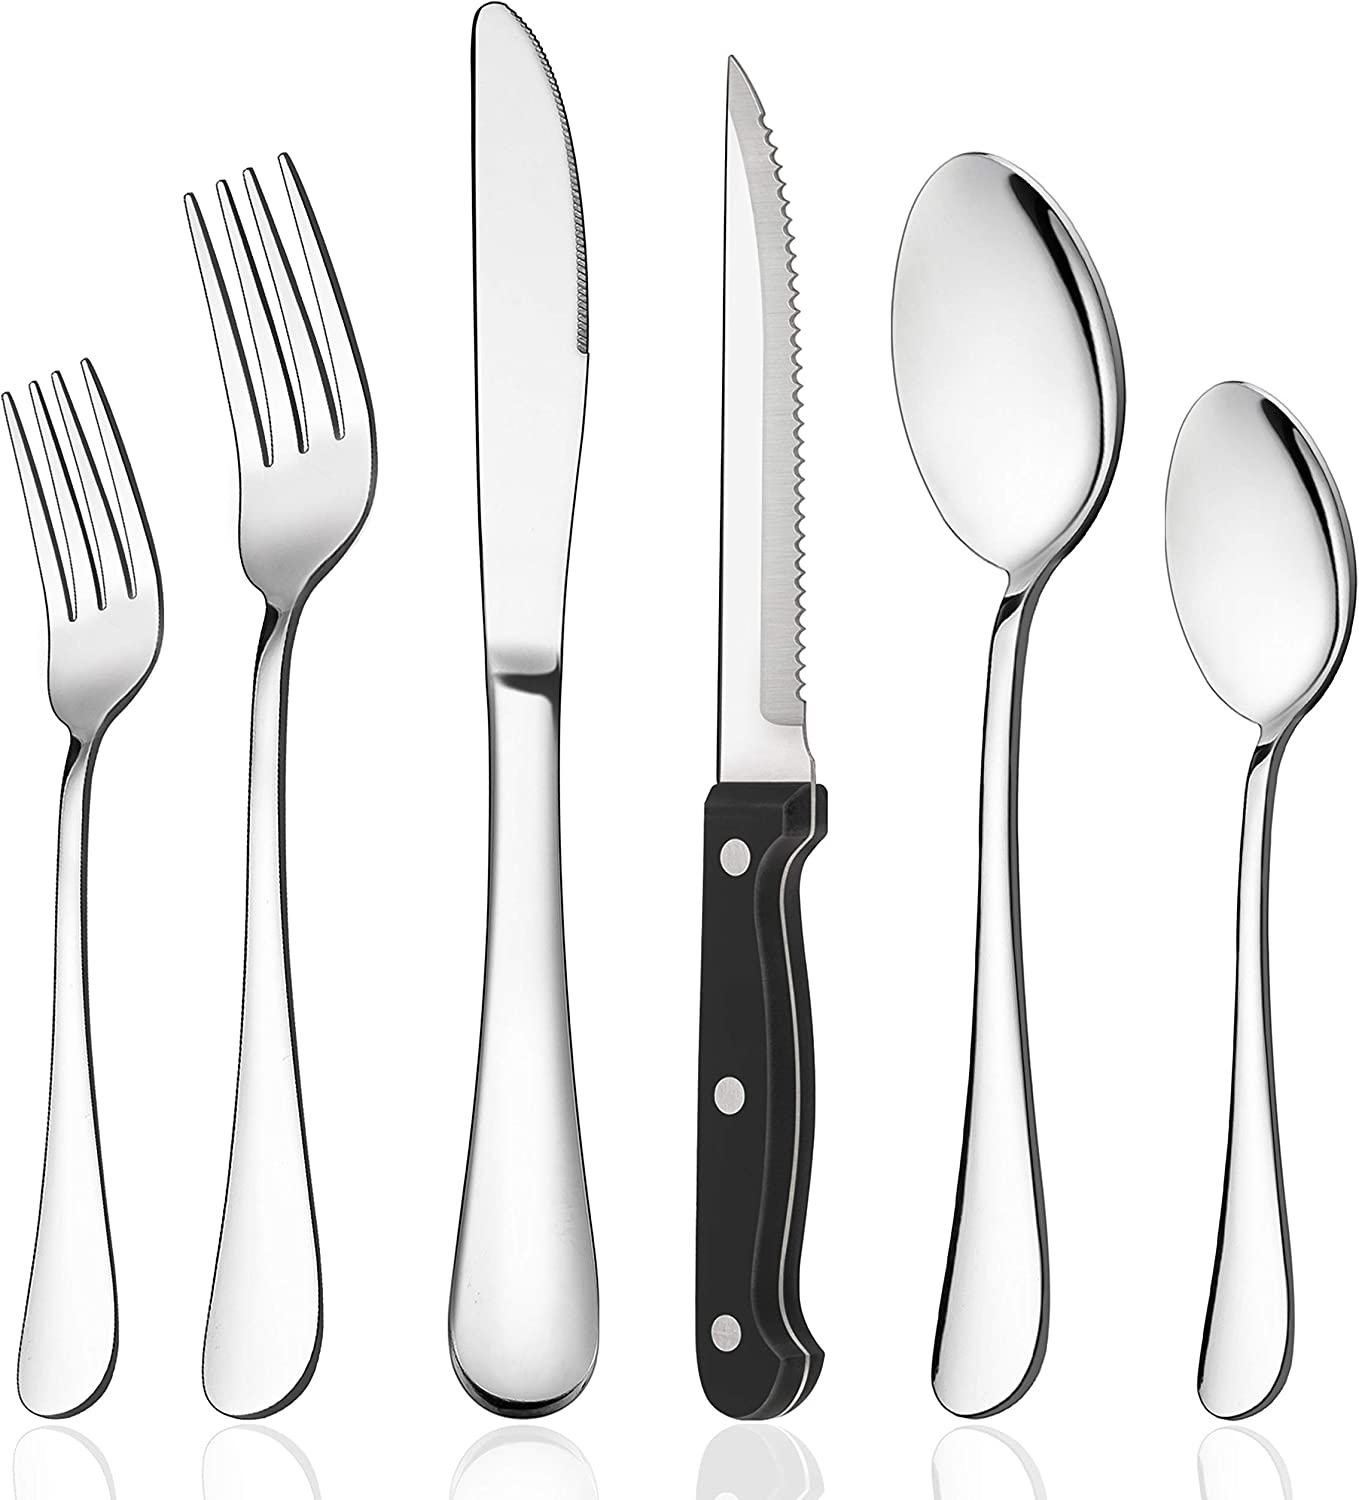 LIANYU 20-Piece Silverware Set with 4 Steak Knives, Stainless Steel Flatware Cutlery Eating Utensils for 4, Mirror Finish, Dishwasher Safe